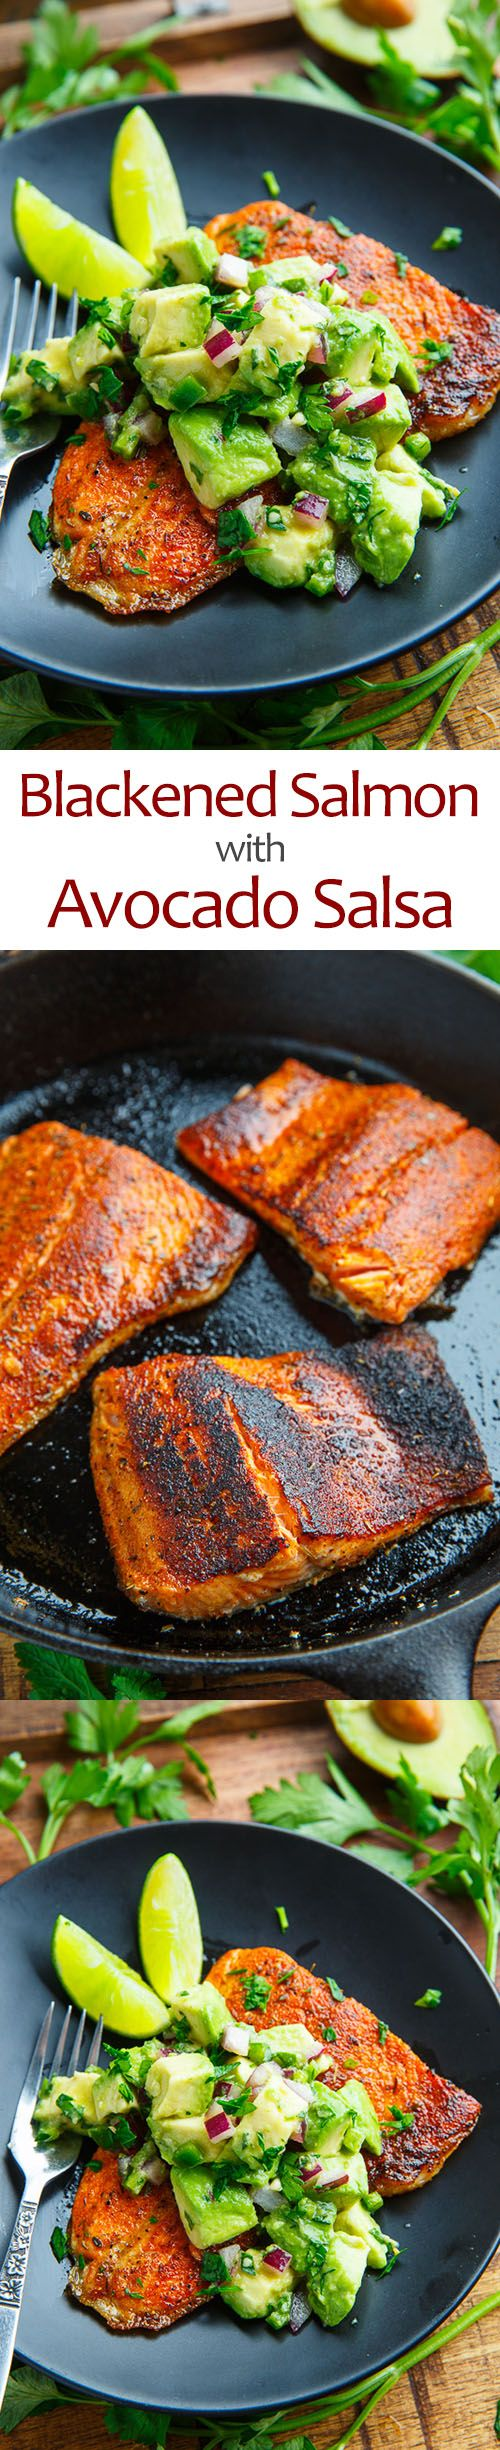 Blackened Salmon with Avocado Salsa - You cannot have too much of a delicious thing.